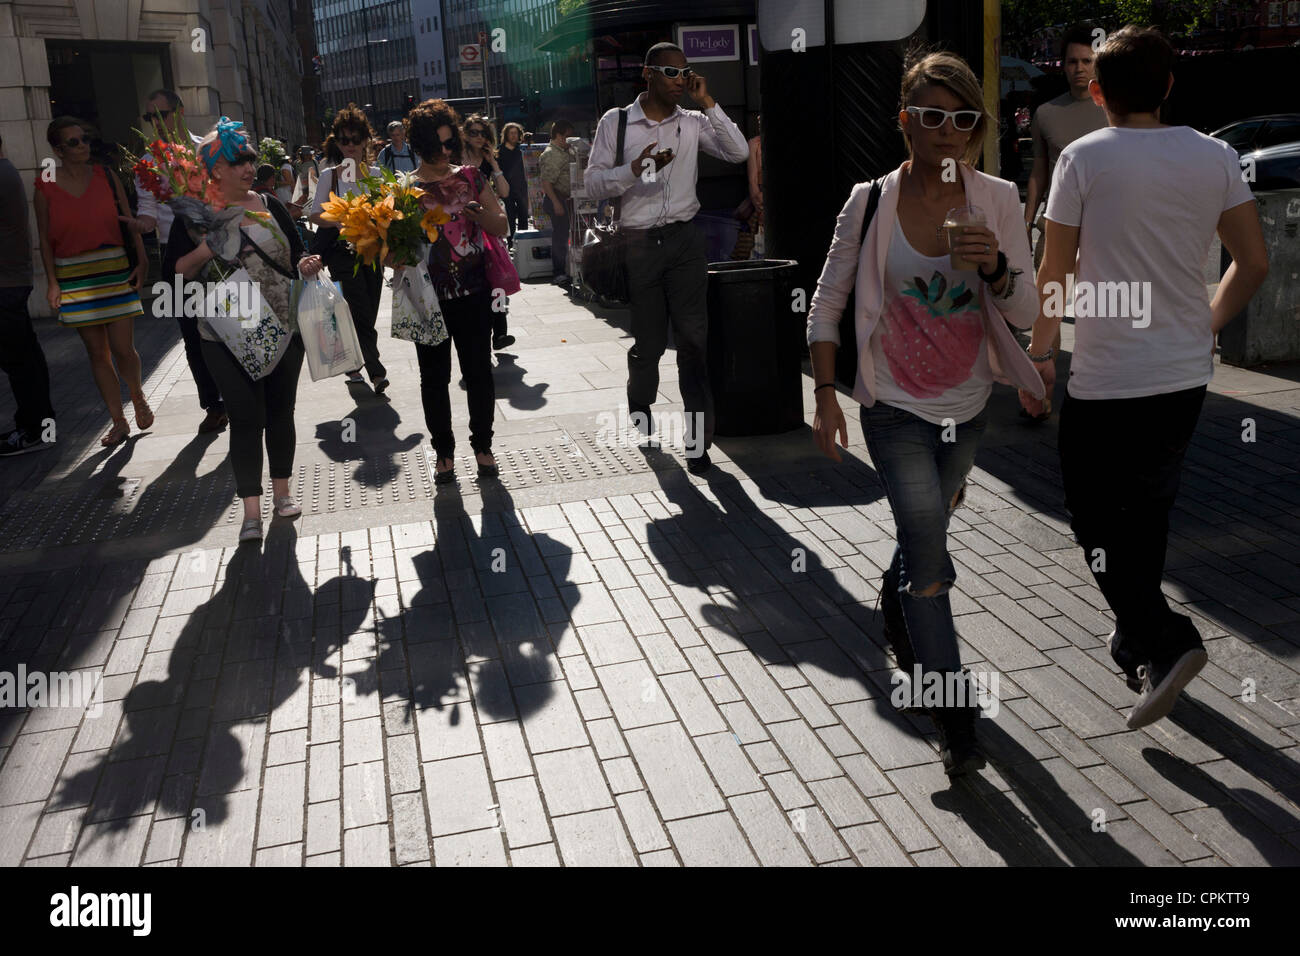 Visitors to the RHS Chelsea Flower Show make their way home through Sloane Square after the last day's plant sell Stock Photo